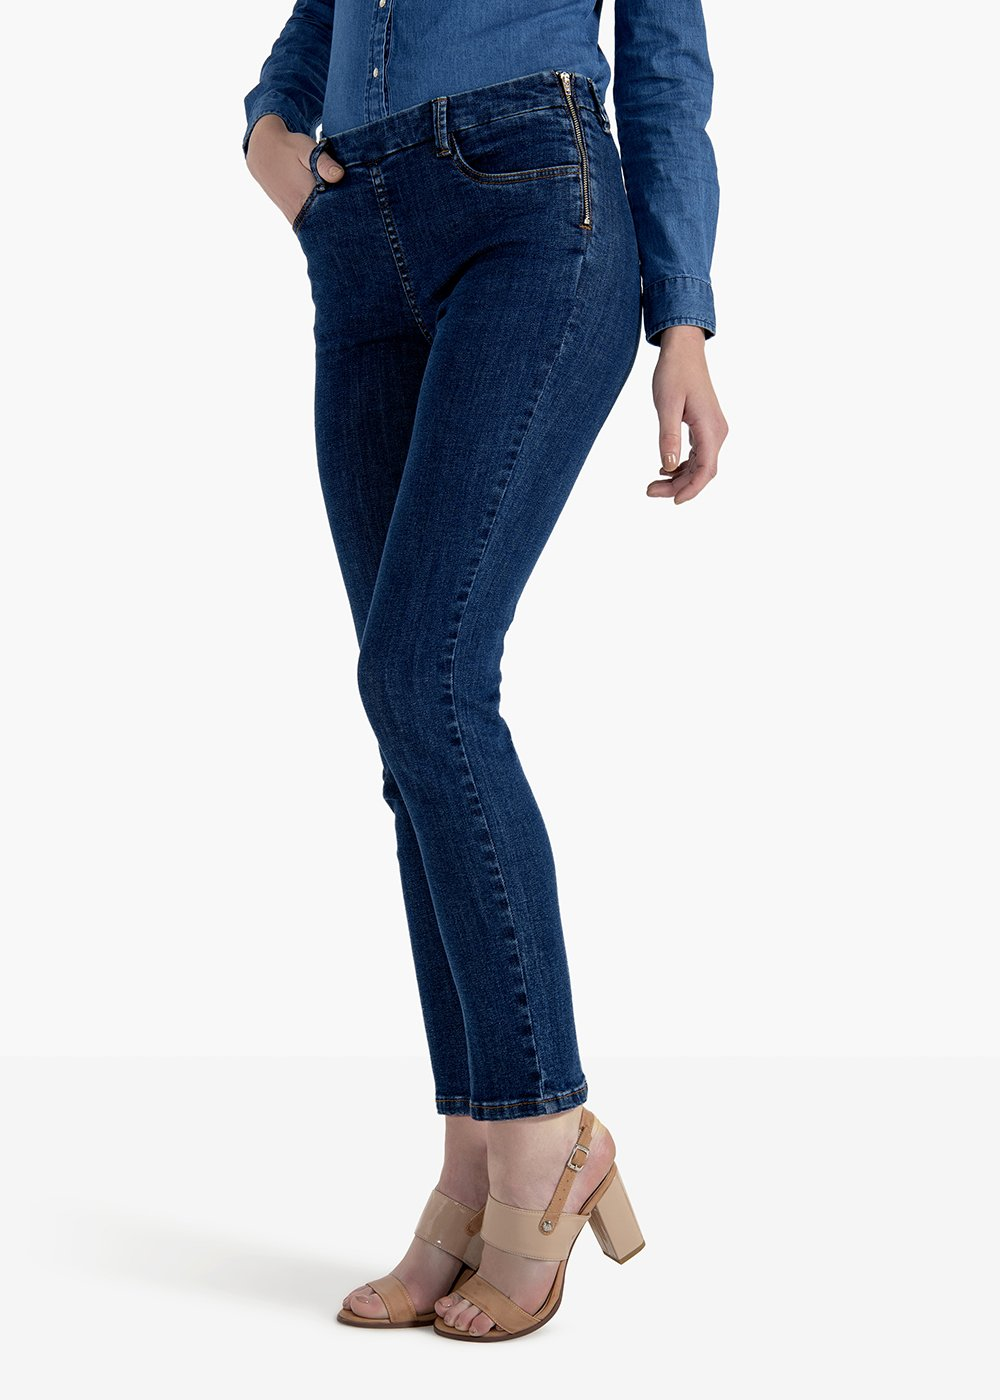 Scarlett trousers in skinny denim model - Medium Blue - Woman